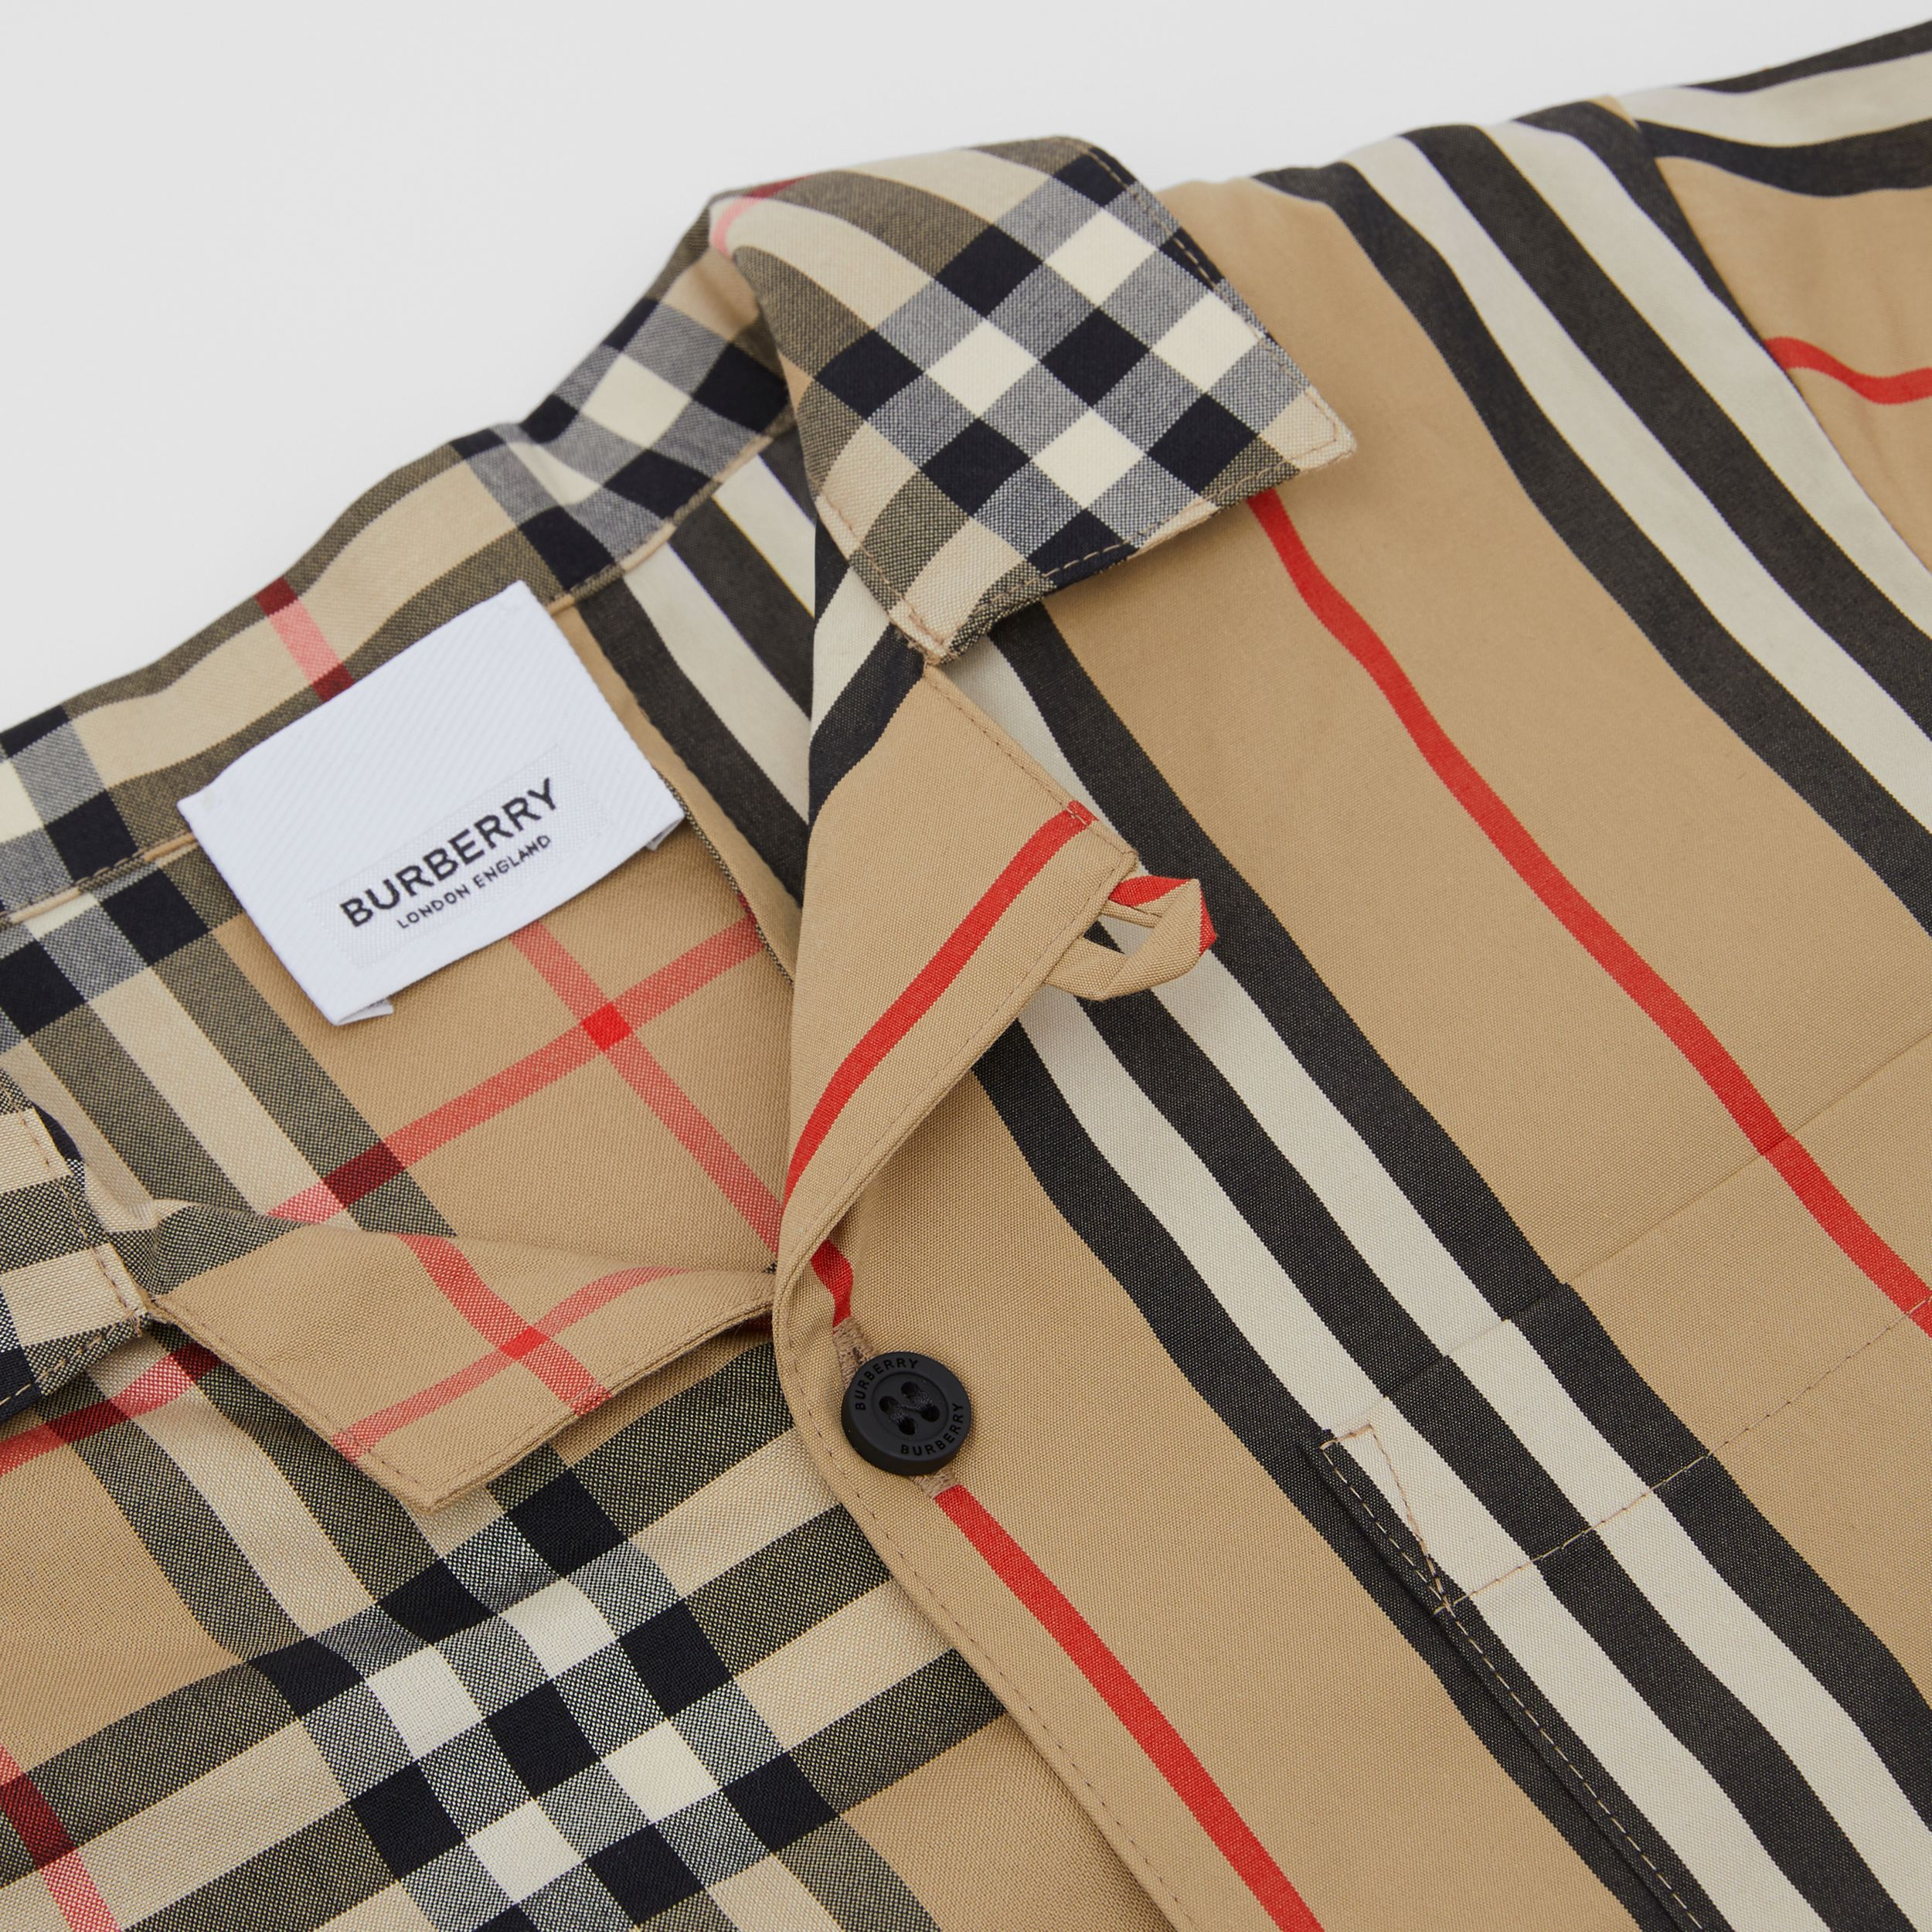 Short-sleeve Vintage Check and Icon Stripe Shirt in Archive Beige | Burberry - 2